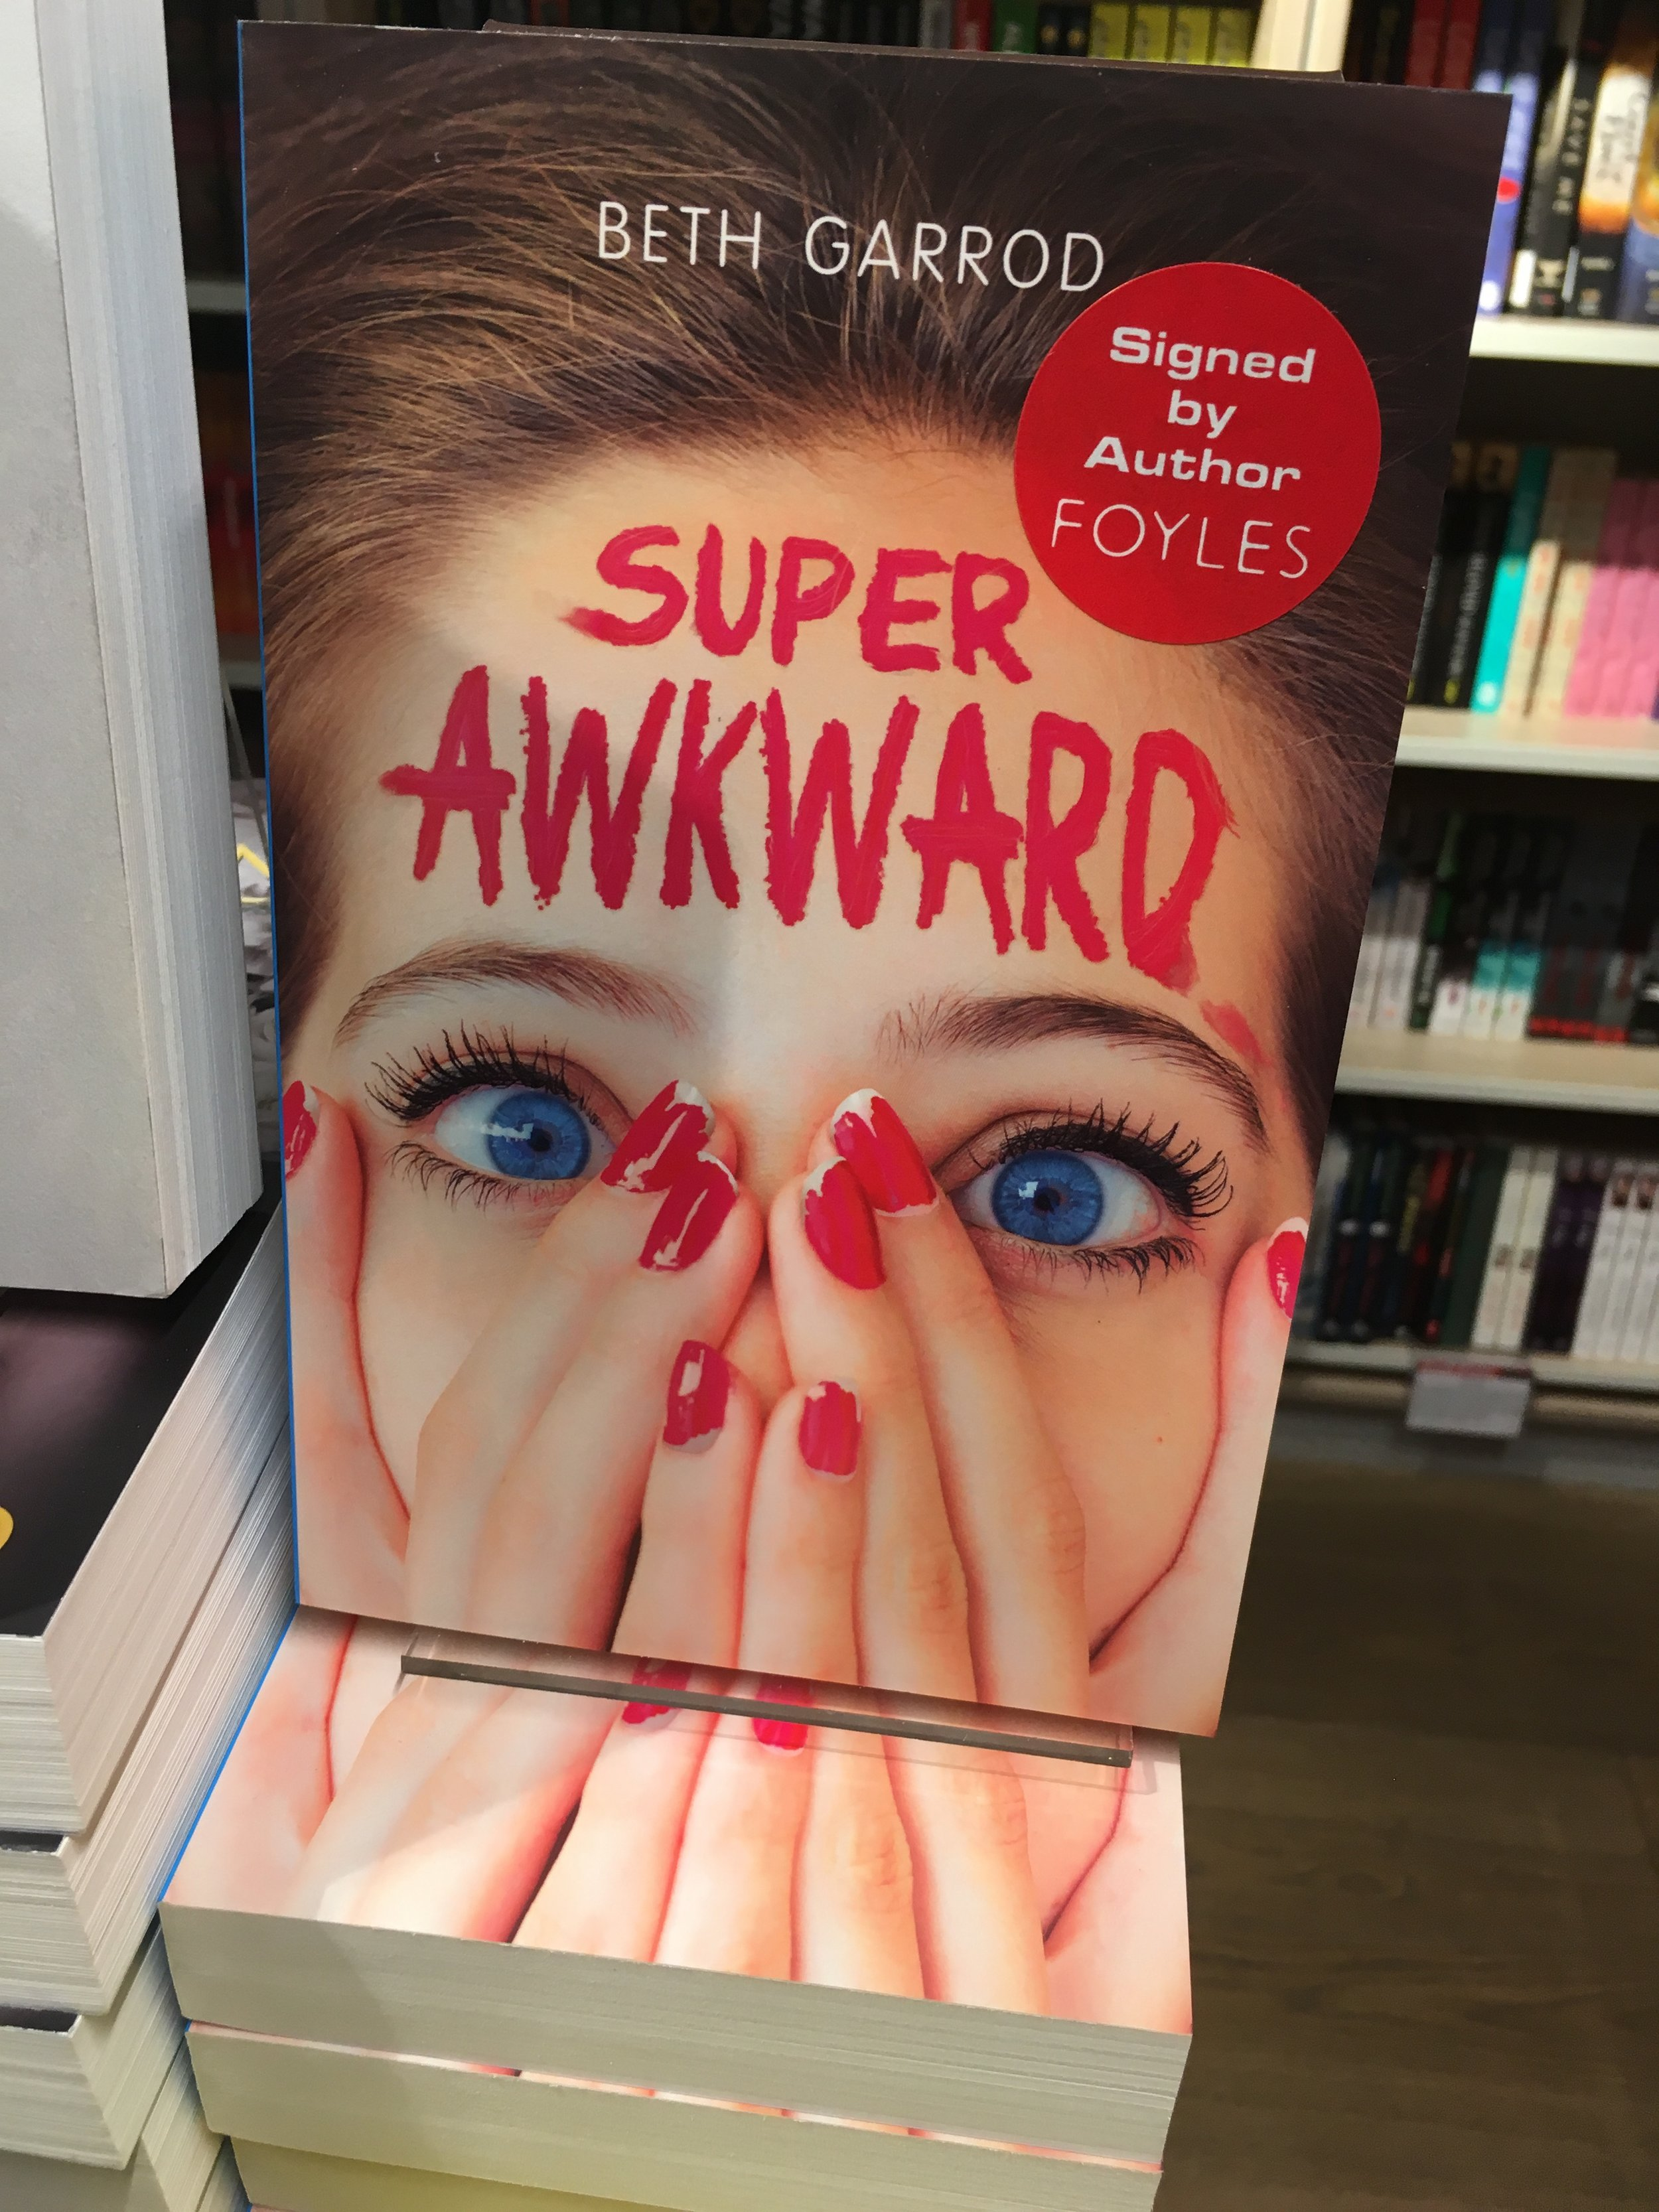 Super Awkward in the amazing Foyles on Charing Cross Road